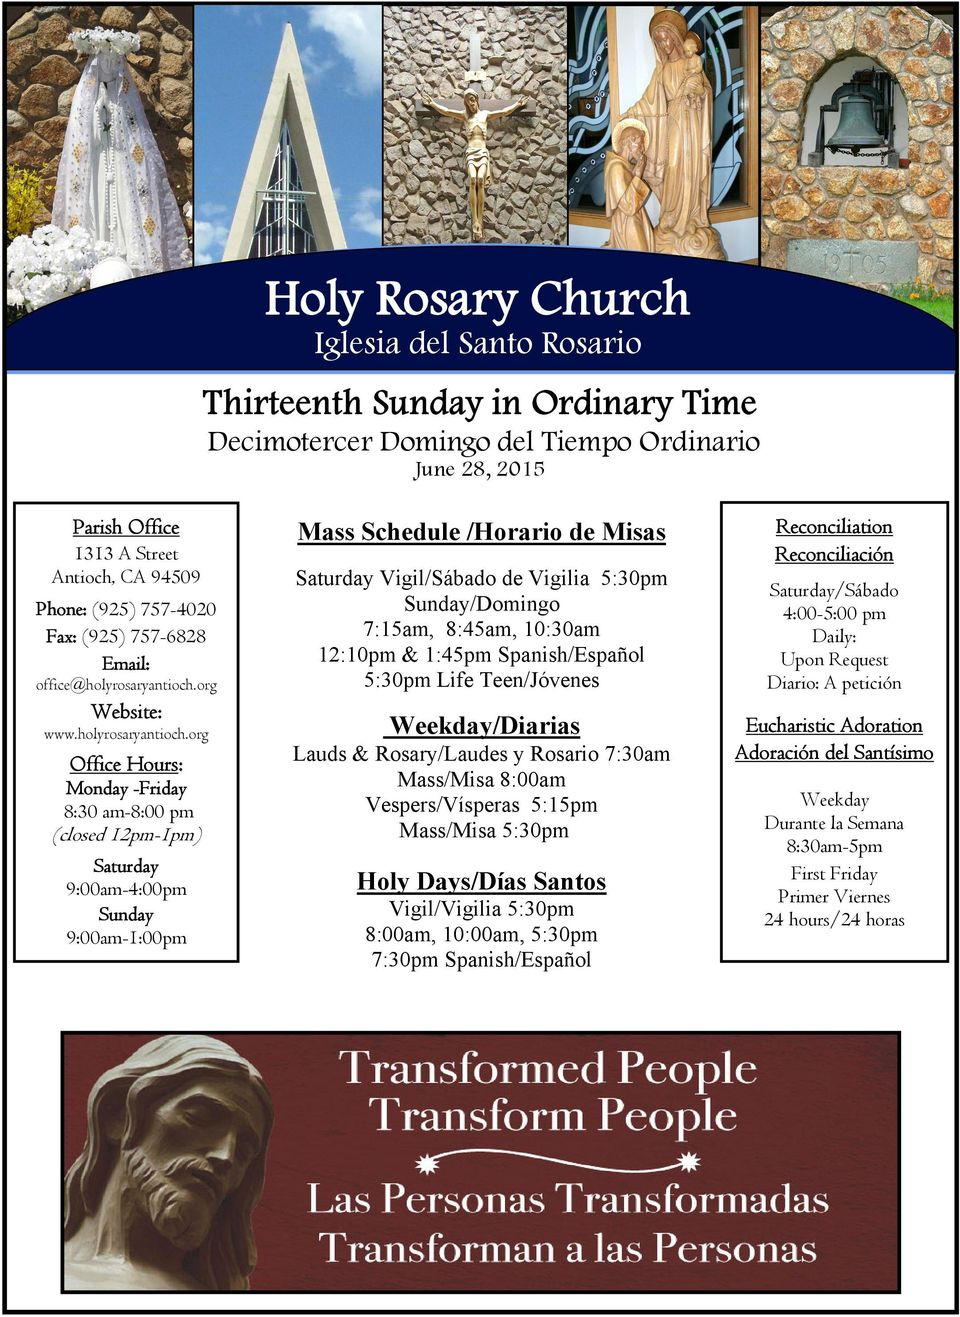 org Website: www.holyrosaryantioch.